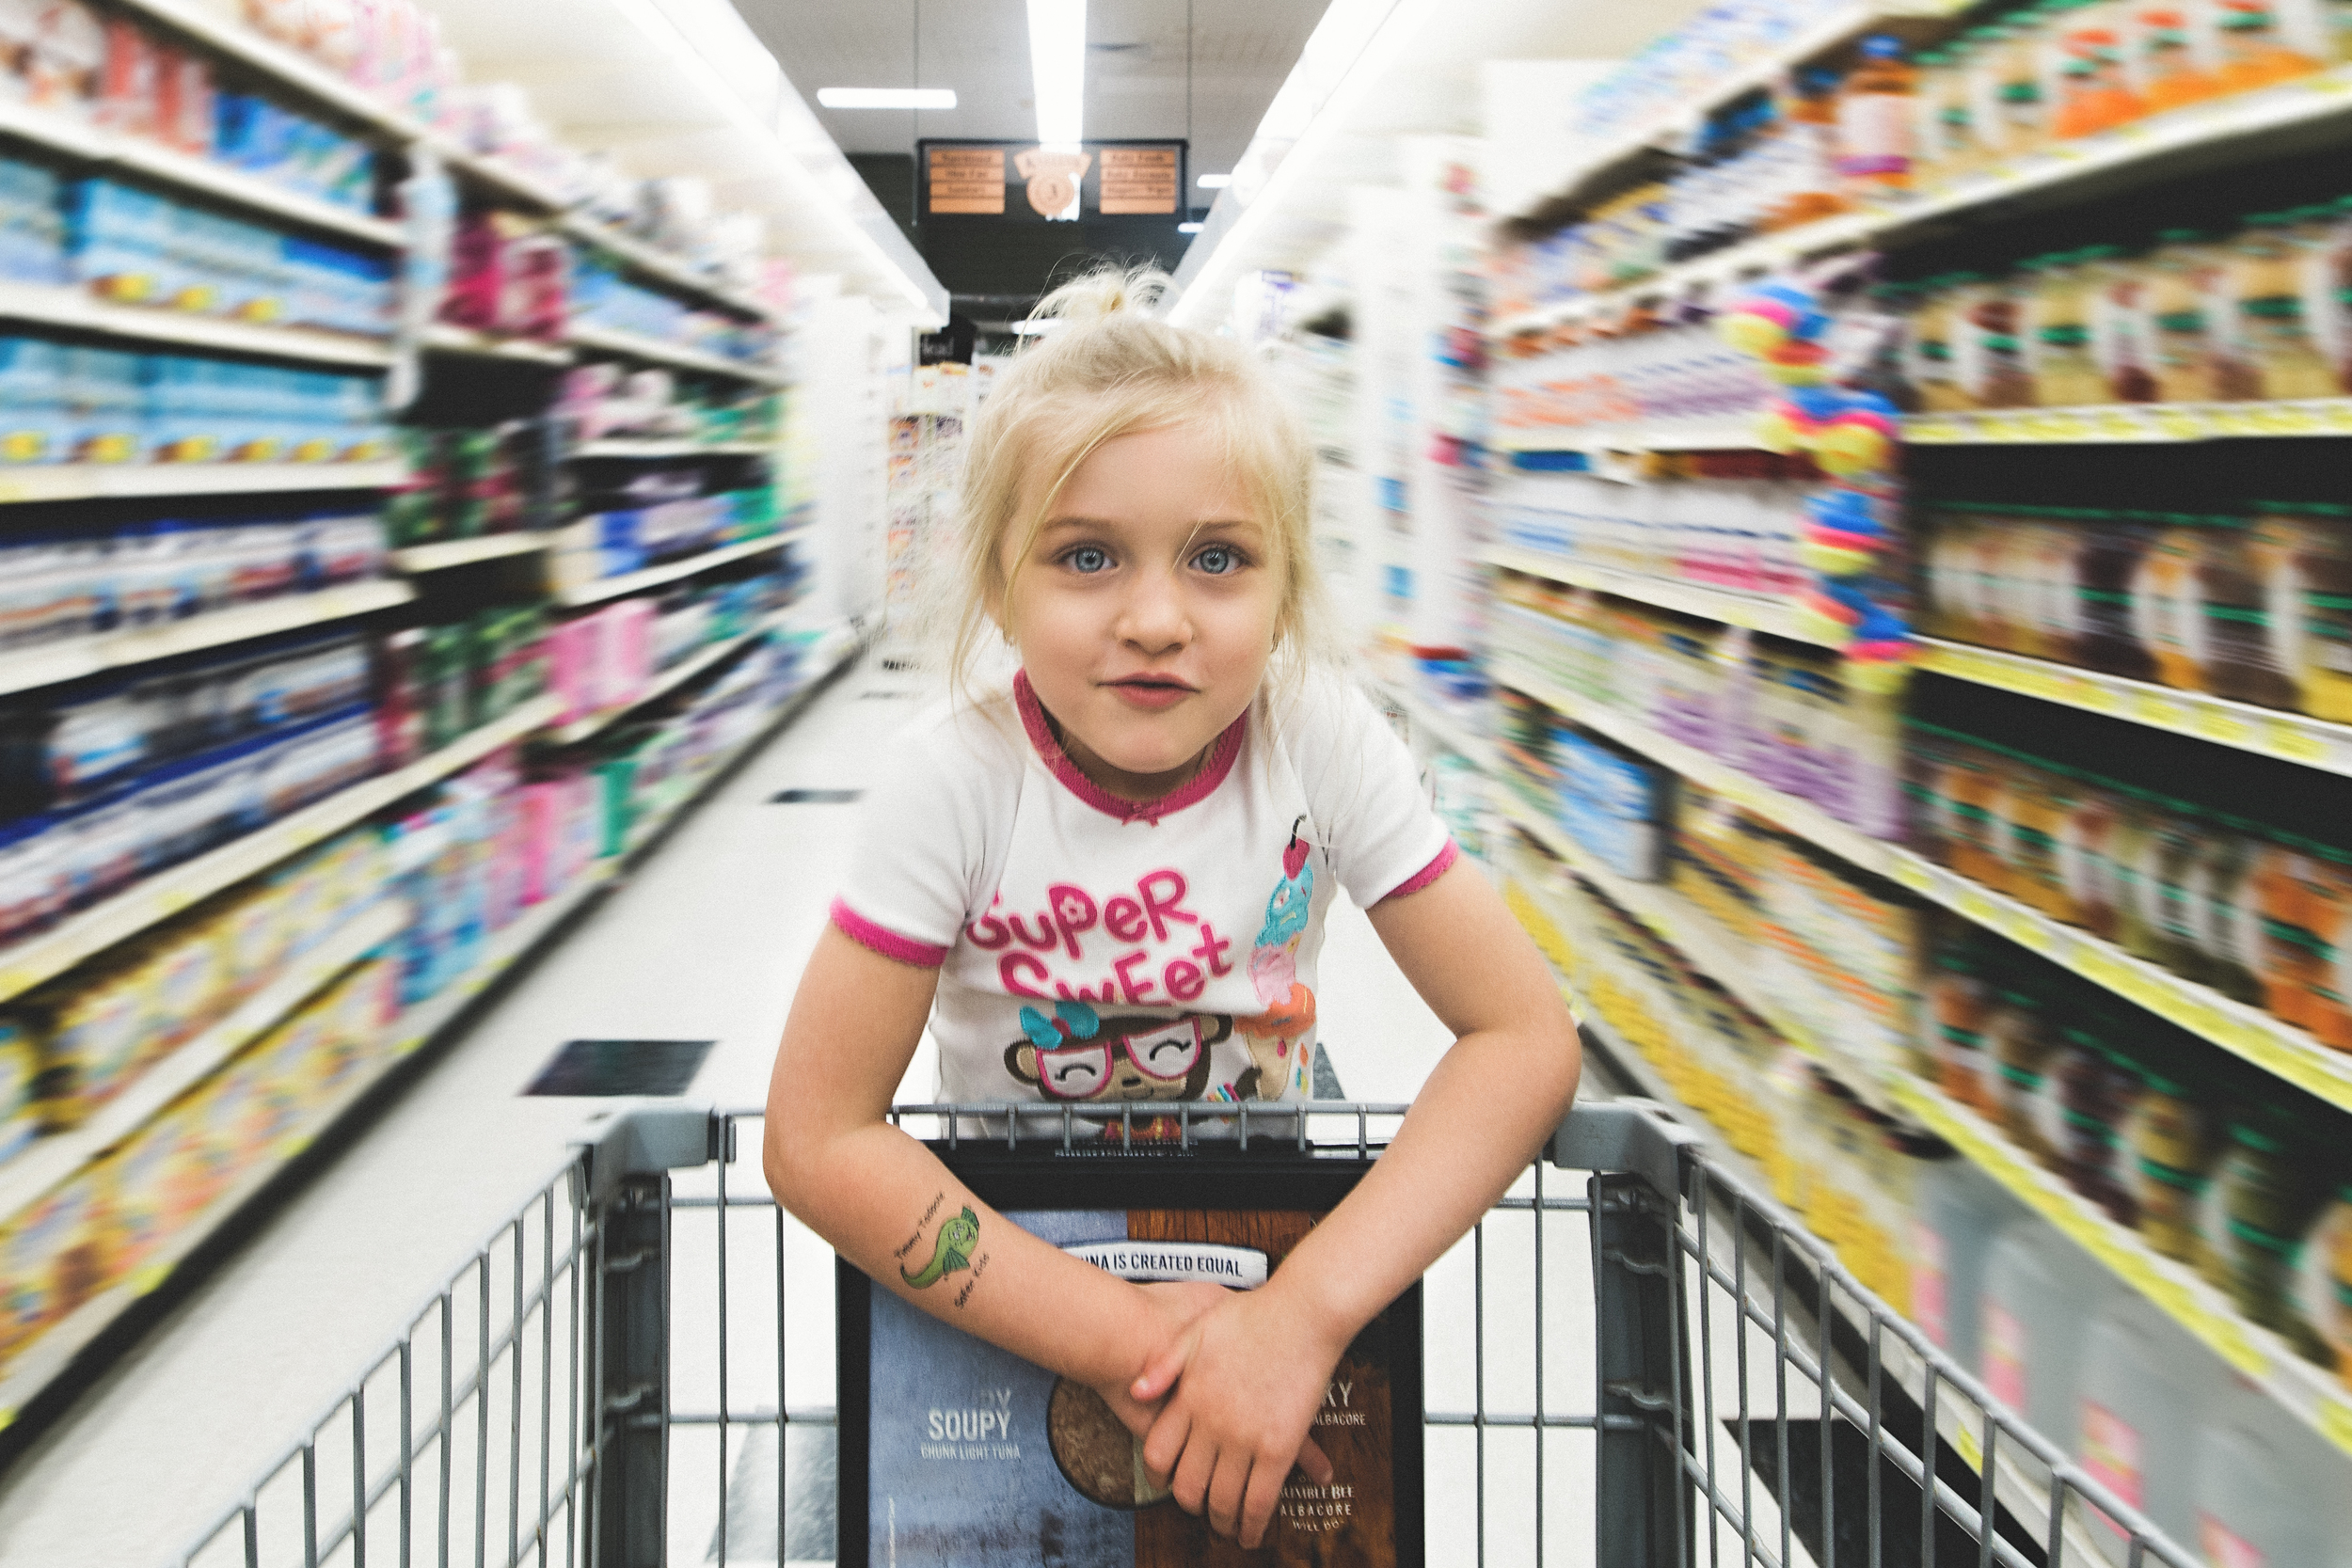 hello-olivia-photography-Long-island-family-photographer-children-panning-at-the-supermarket